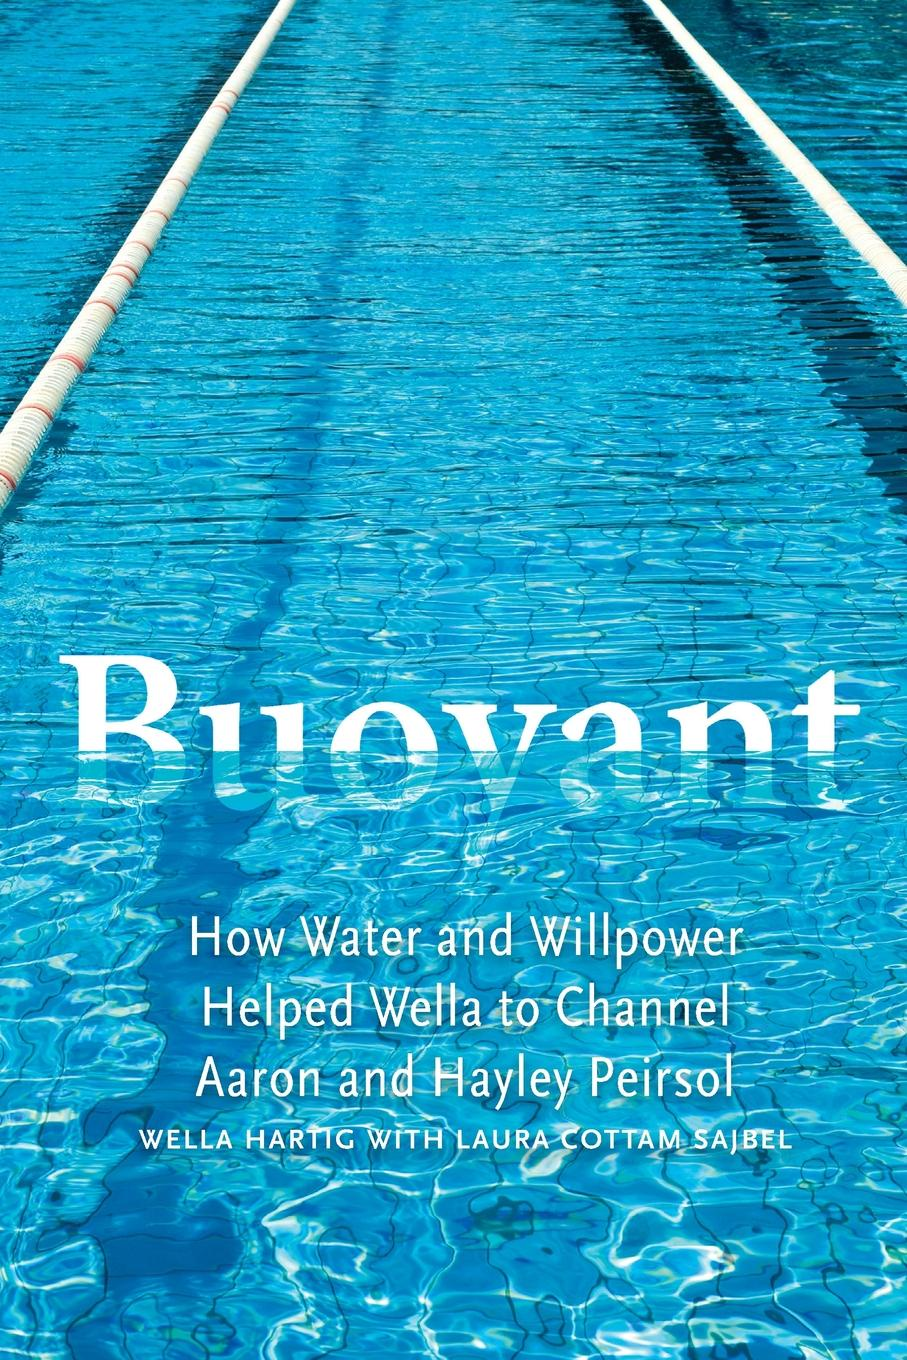 лучшая цена Laura Cottam Sajbel, Wella Hartig Buoyant. How Water and Willpower Helped Wella to Channel Aaron and Hayley Peirsol